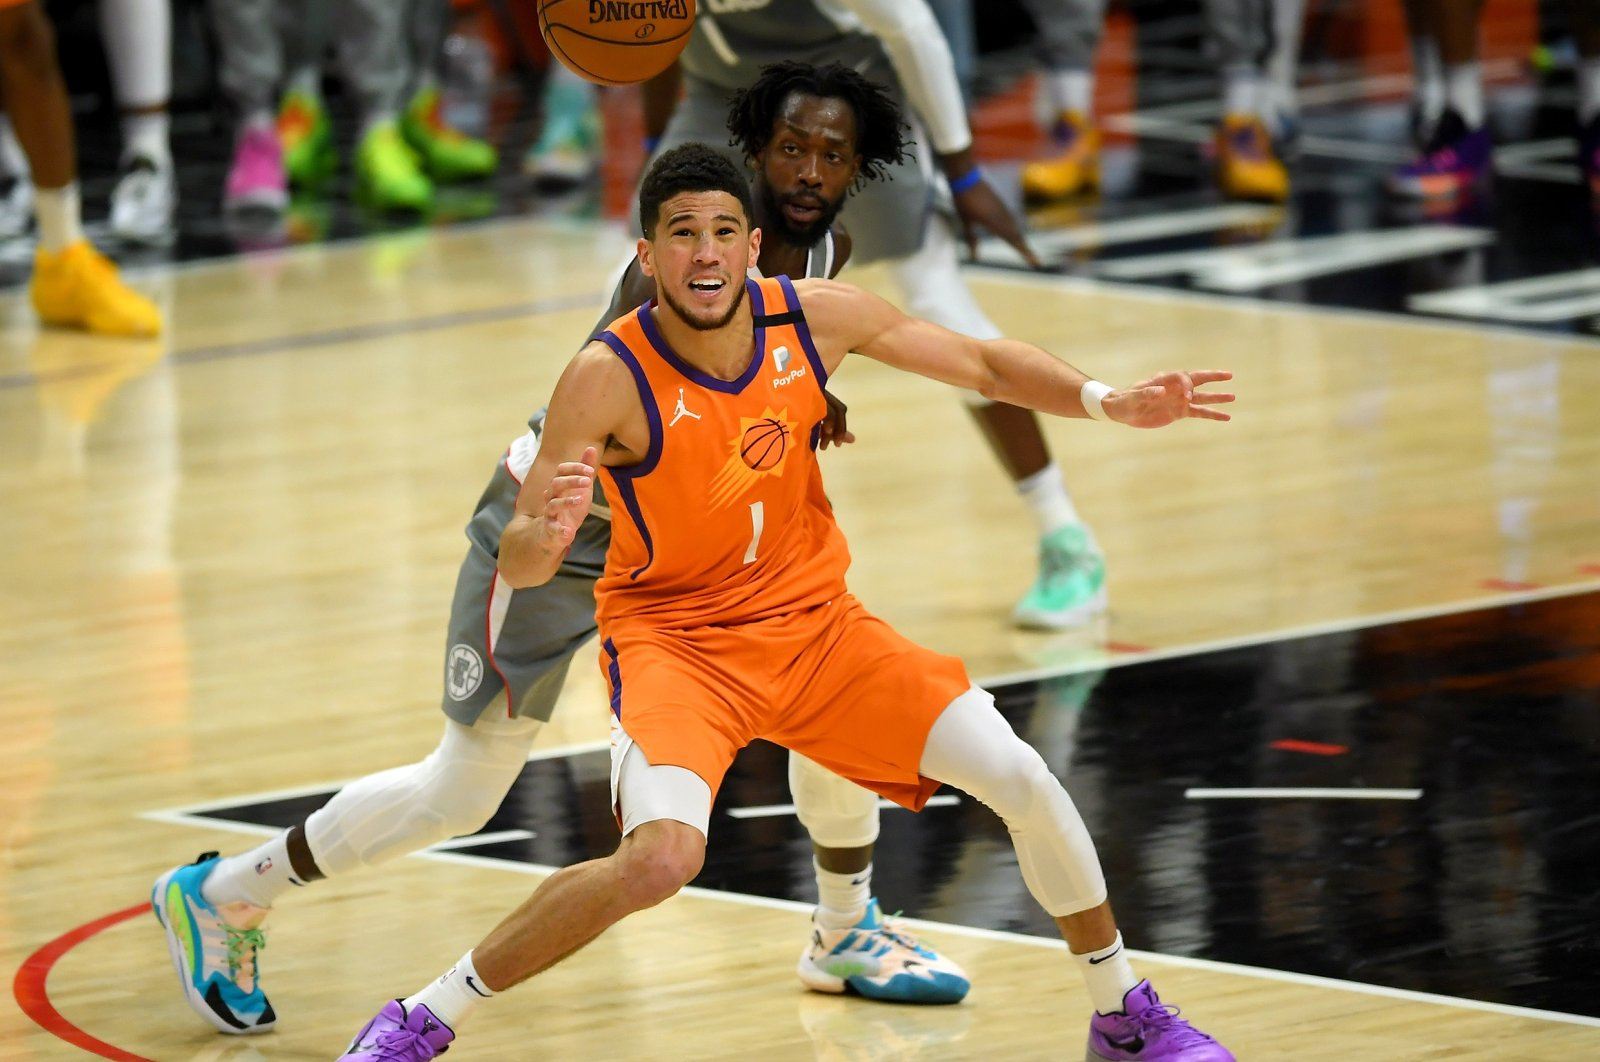 Phoenix Suns guard Devin Booker (front) is shadowed by Los Angeles Clippers guard Patrick Beverley in Game 4 of 2021 NBA Playoffs Western Conference Finals at Staples Center, Los Angeles, California, U.S., June 27, 2021.